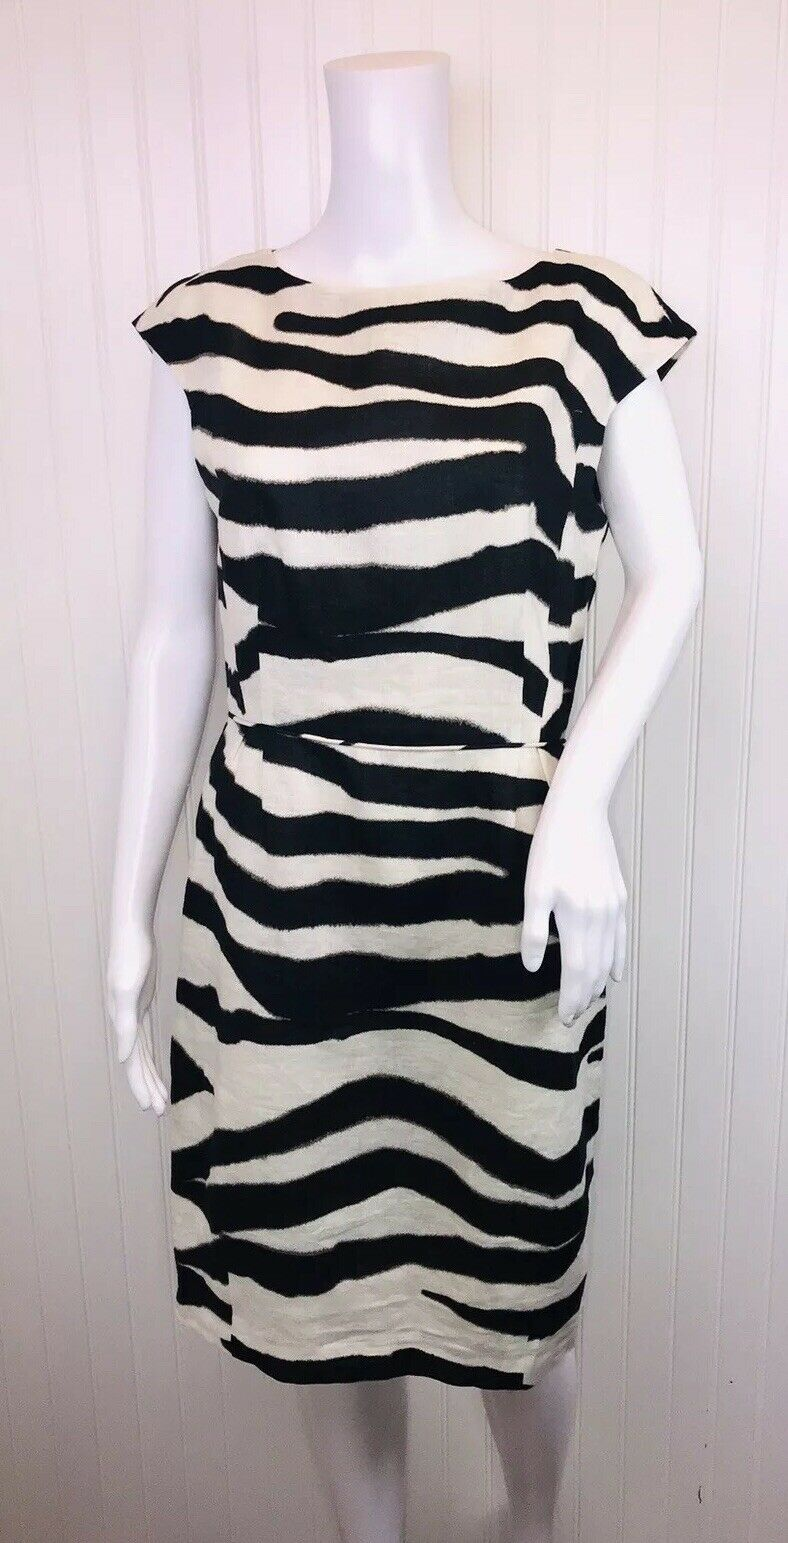 Banana Republic Women's Size 10 Sheath Dress Ivory Black Animal Print 100% Linen